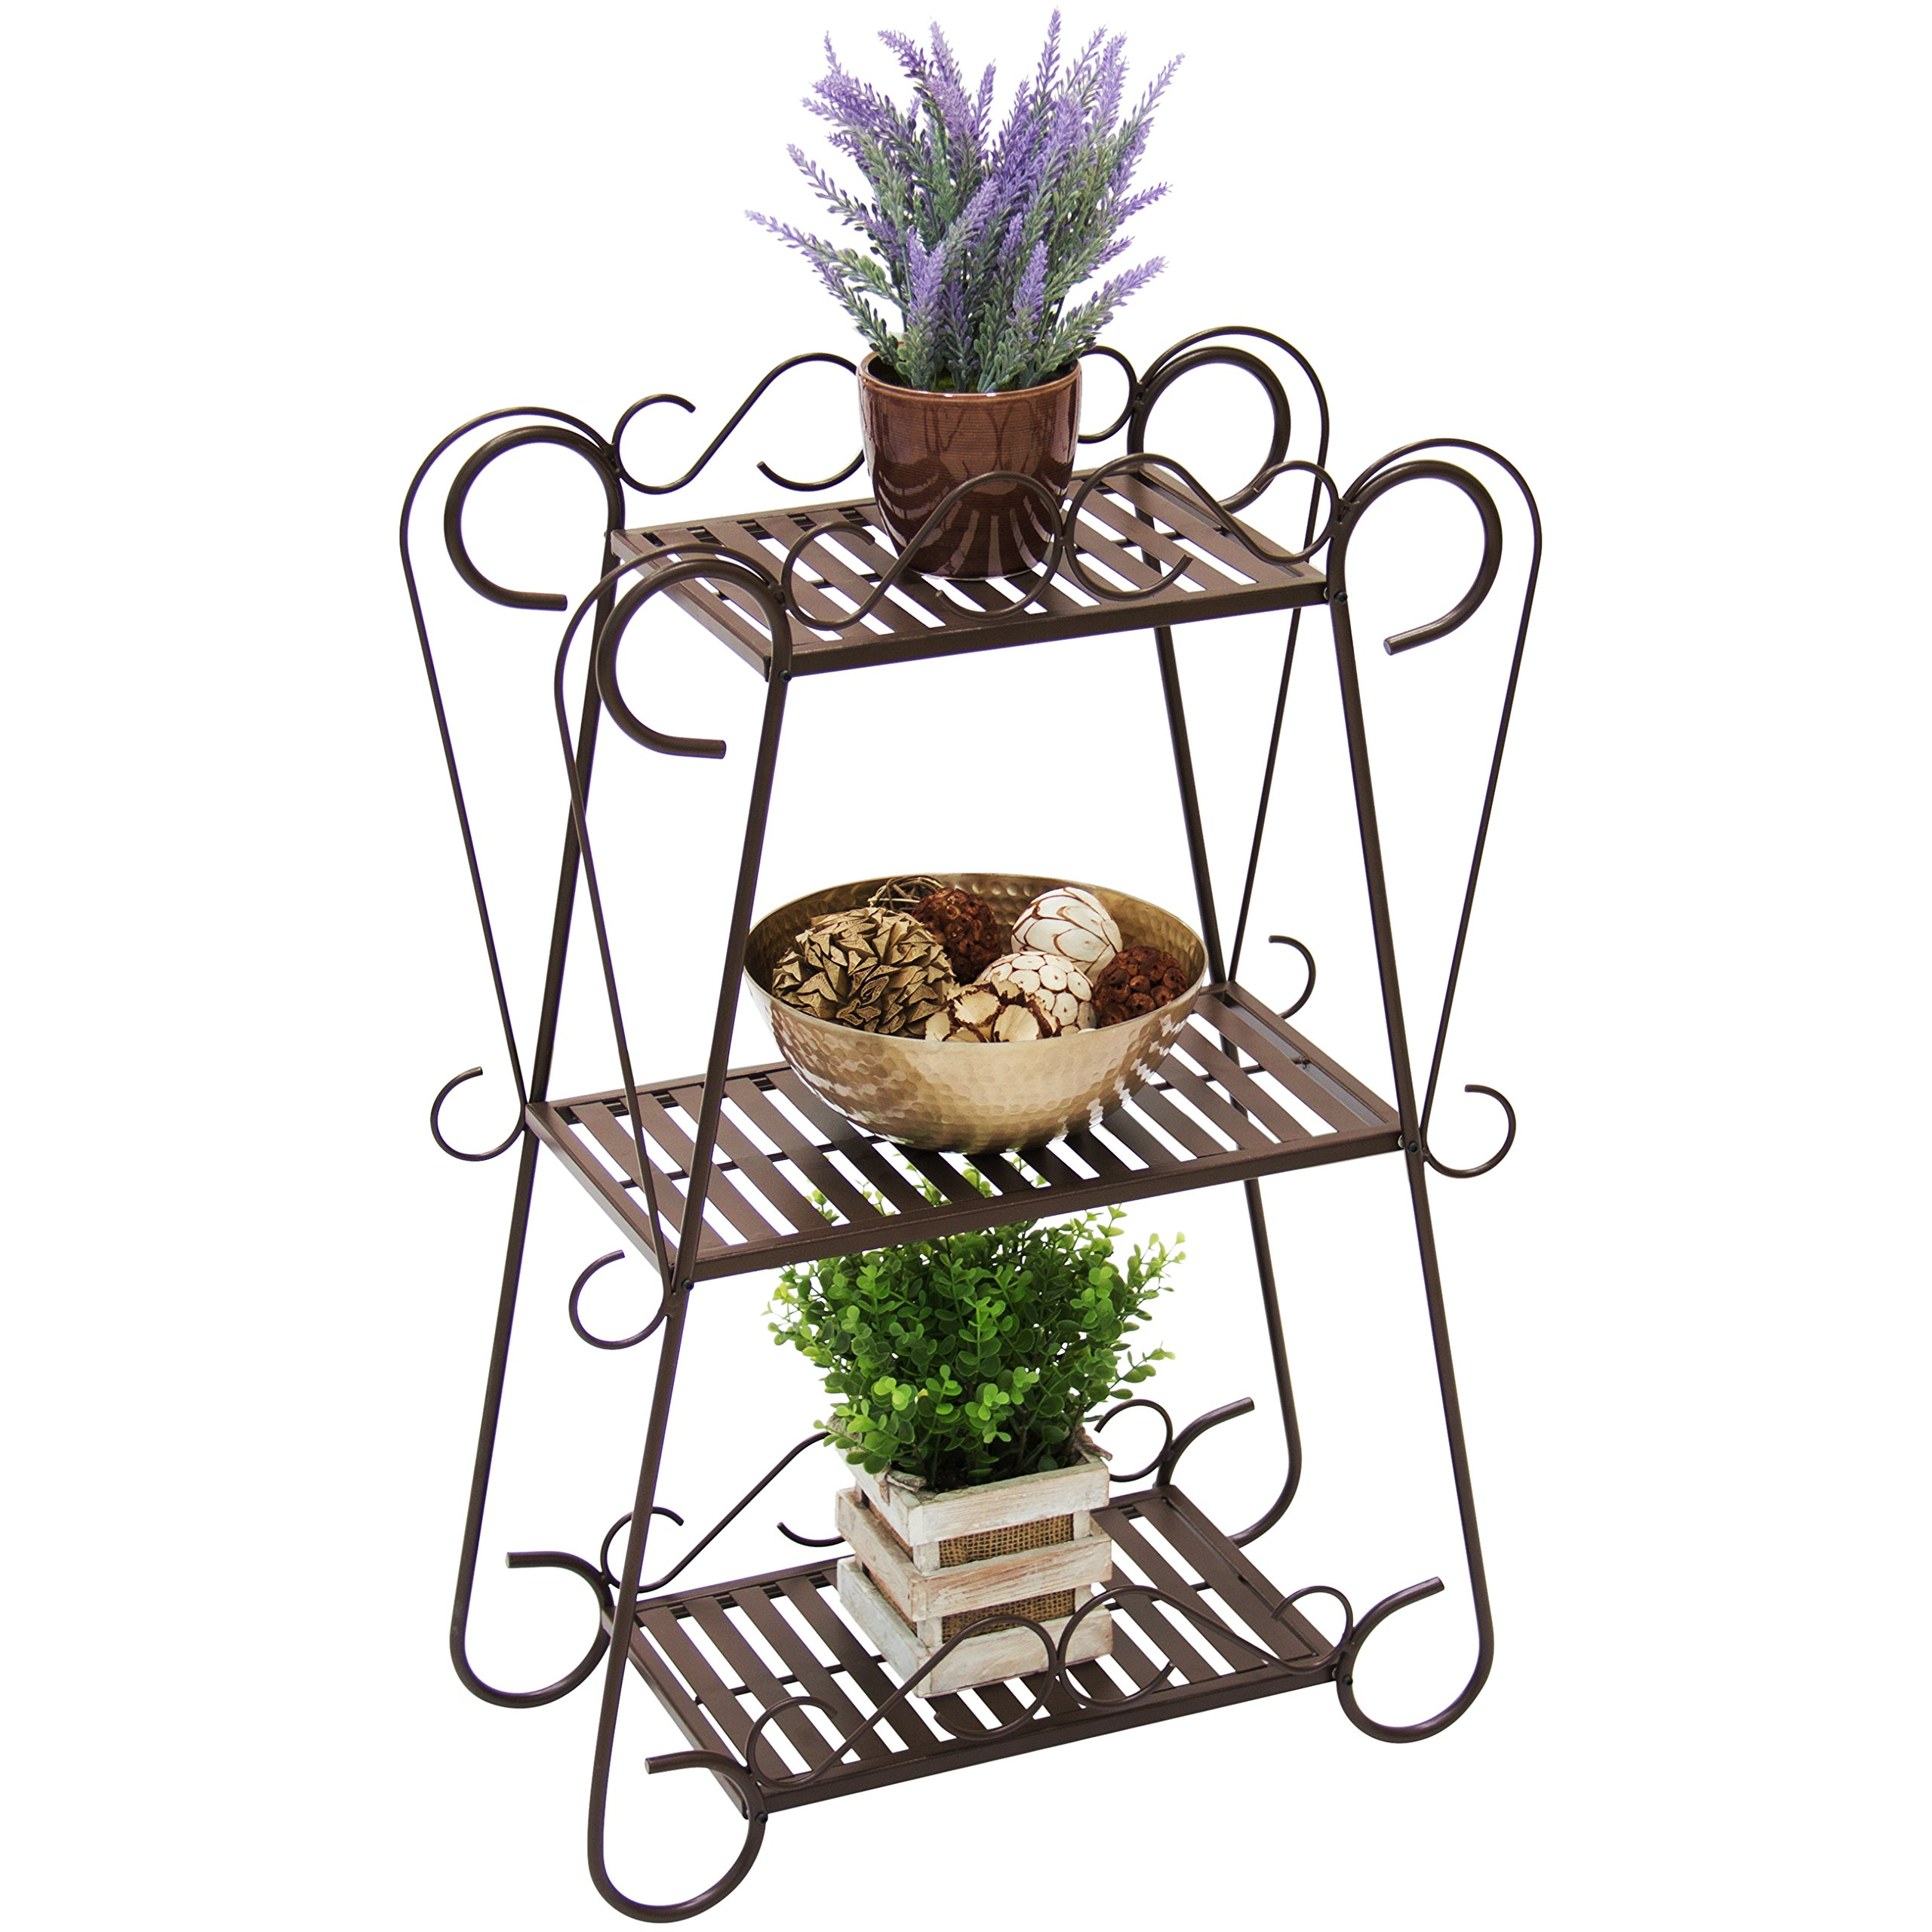 Best Choice Products Multifunctional 3-Shelf Metal Plant Stand Display Rack with Slatted Shelves, Bronze by Best Choice Products